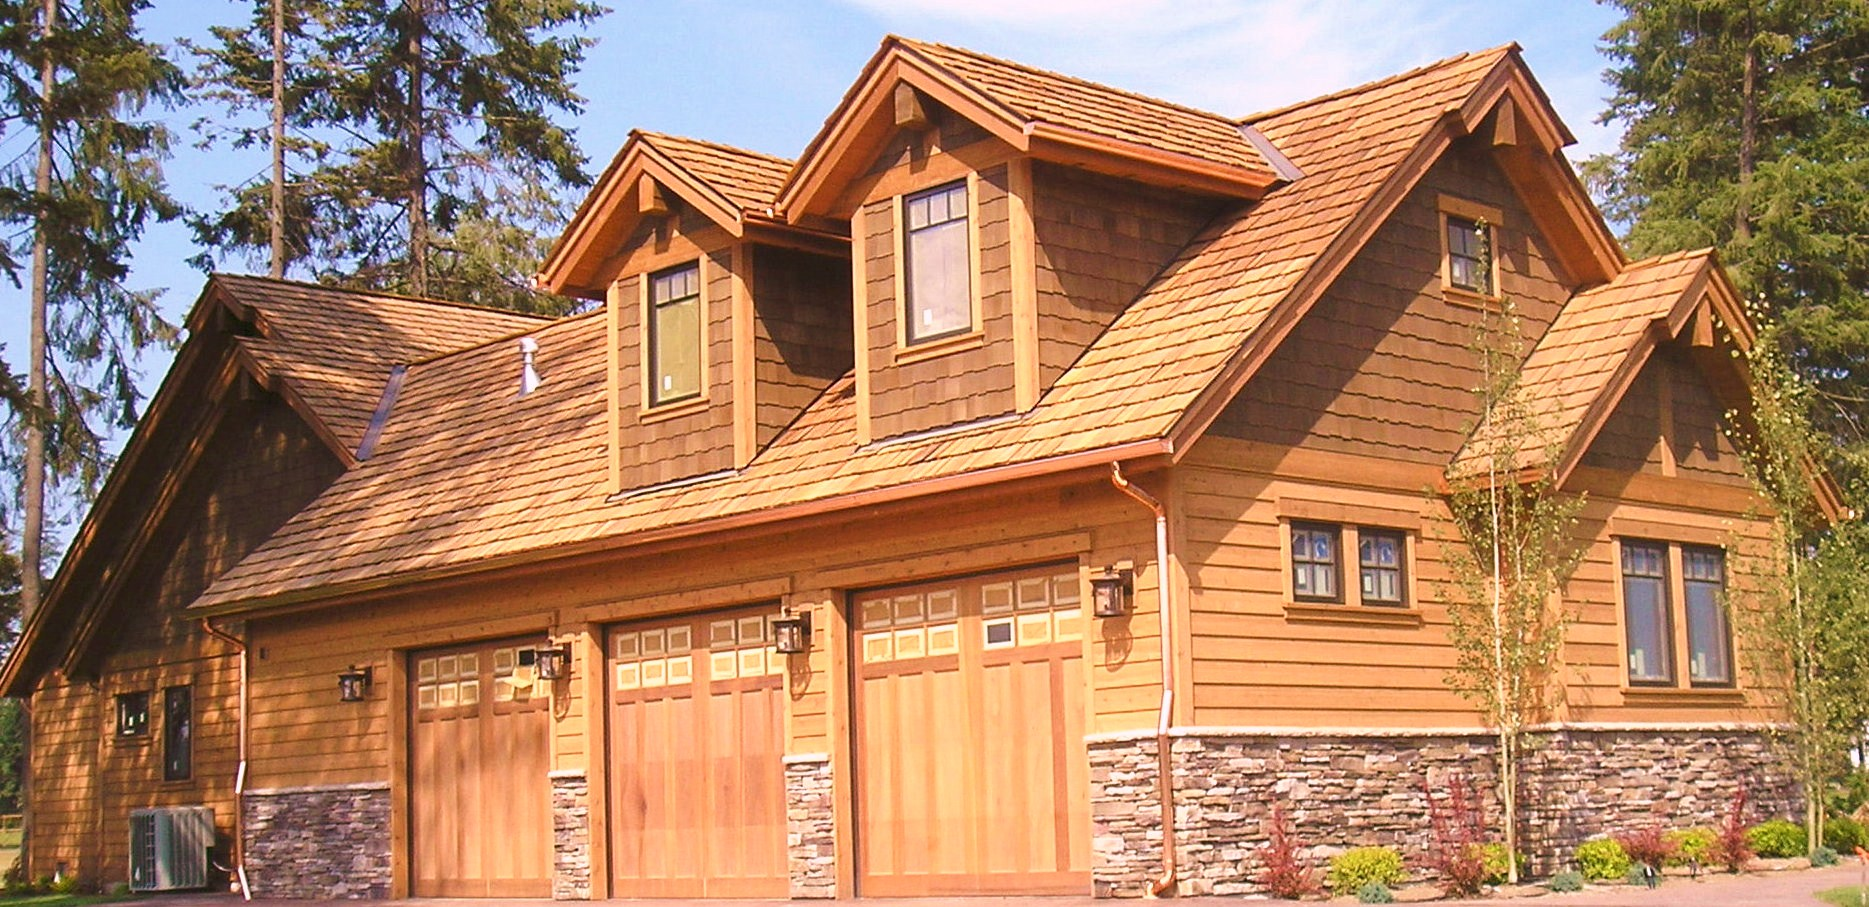 Virginia Roofing amp Siding Company Cedar